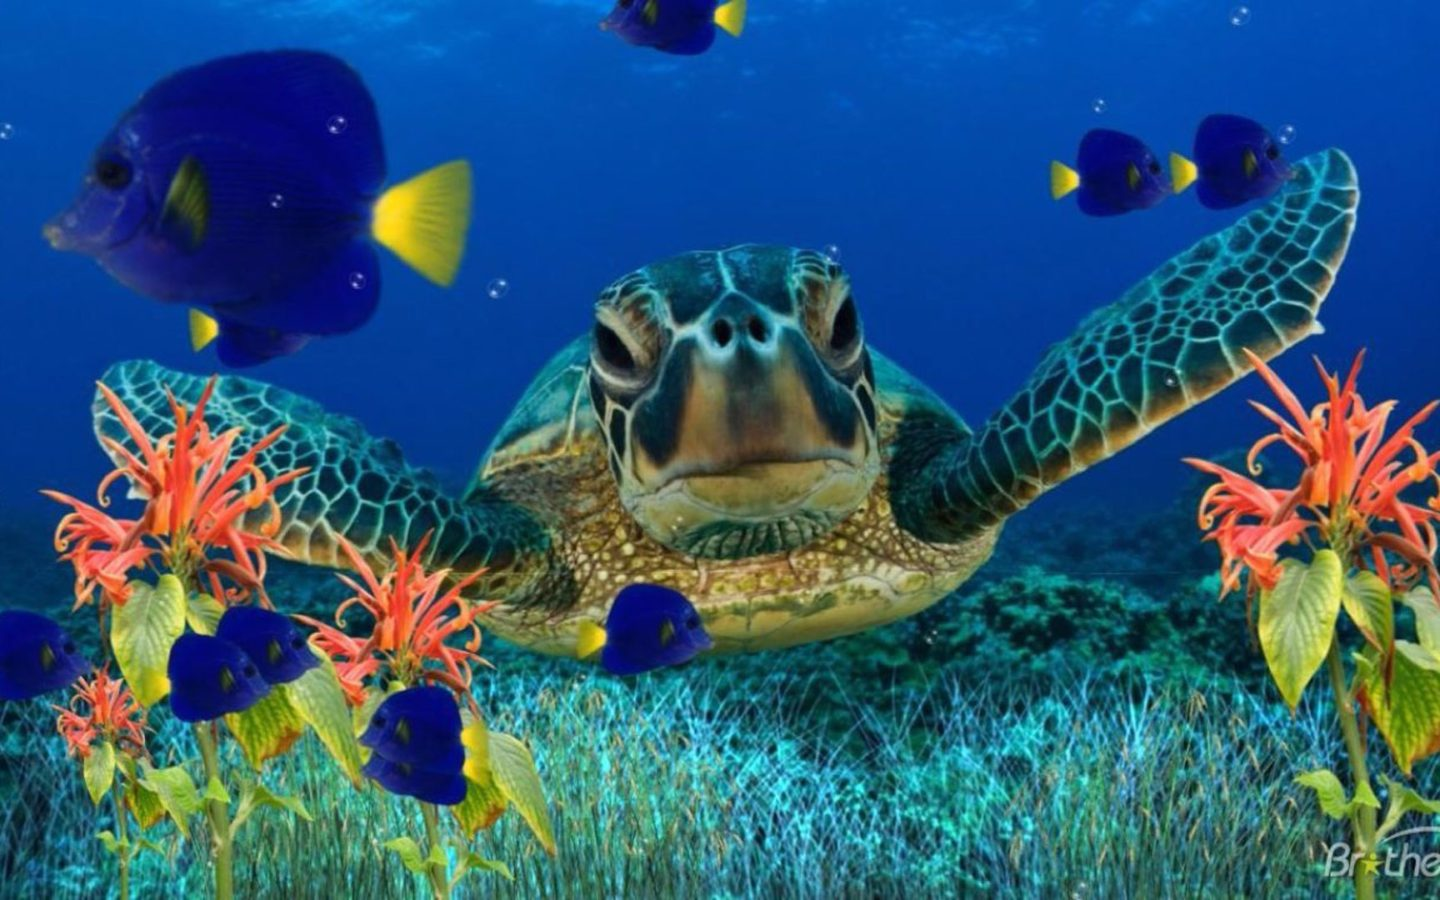 How To Get An Animated Wallpaper Windows 10 Sea Turtle Underwater Flora Fish Art Wallpaper Hd